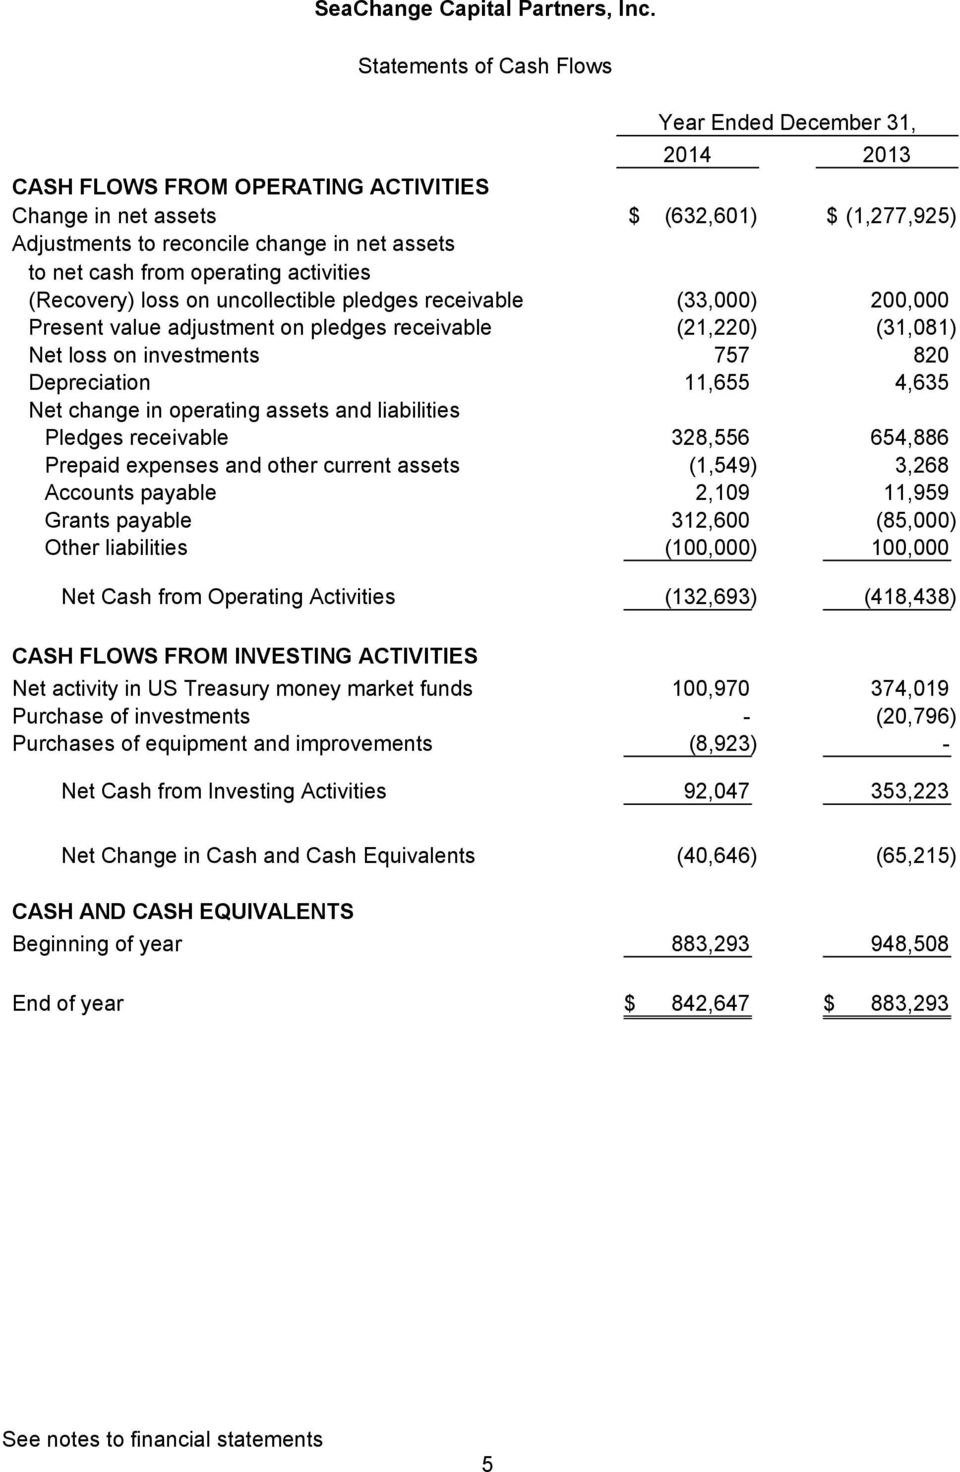 assets and liabilities Pledges receivable 328,556 654,886 Prepaid expenses and other current assets (1,549) 3,268 Accounts payable 2,109 11,959 Grants payable 312,600 (85,000) Other liabilities